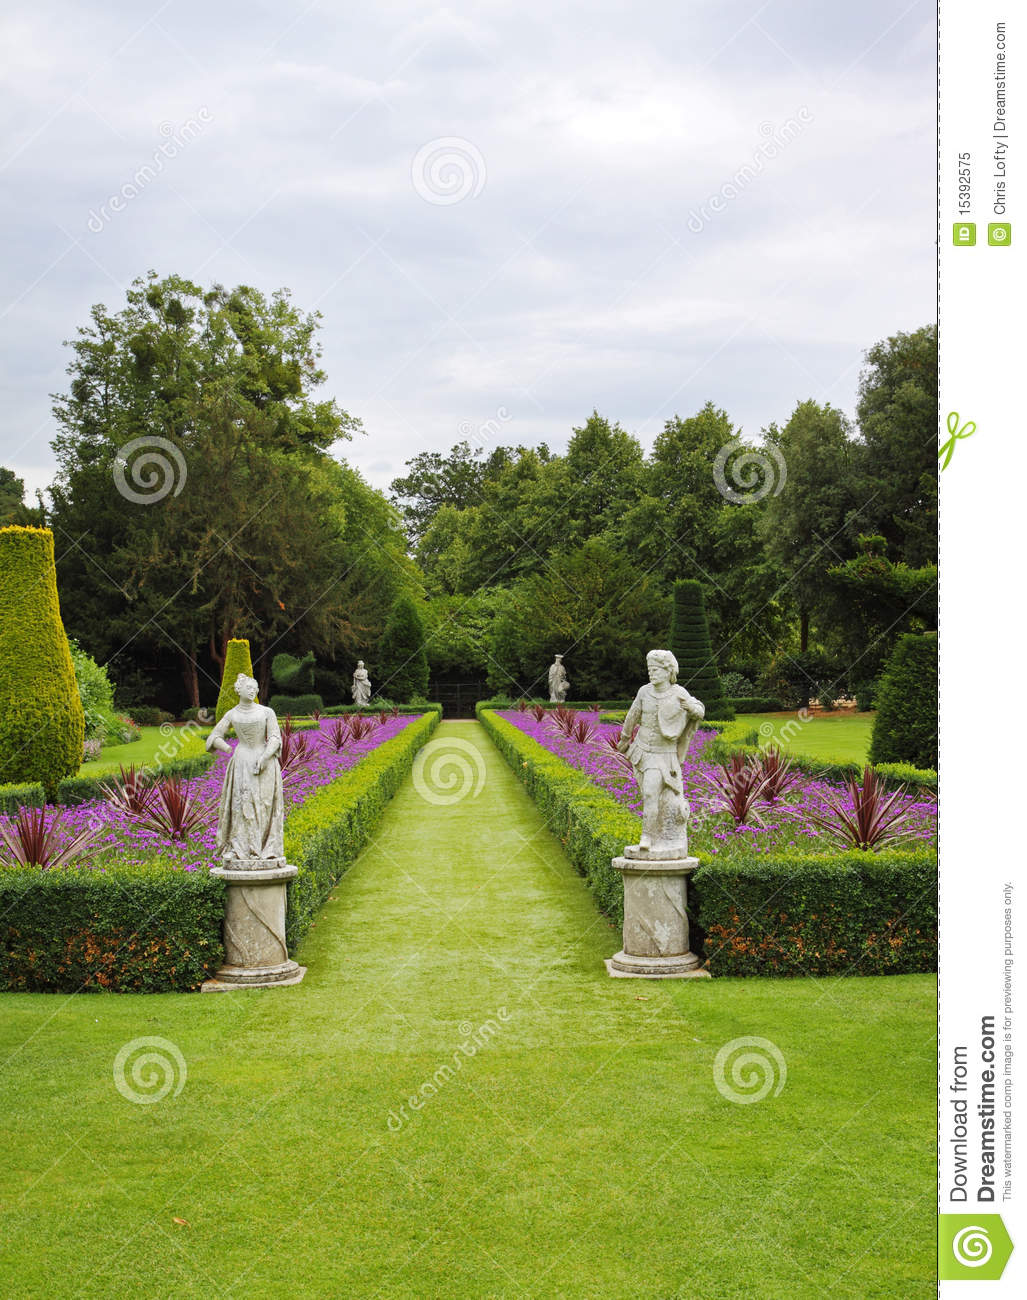 a formal english landscaped garden royalty free stock photo